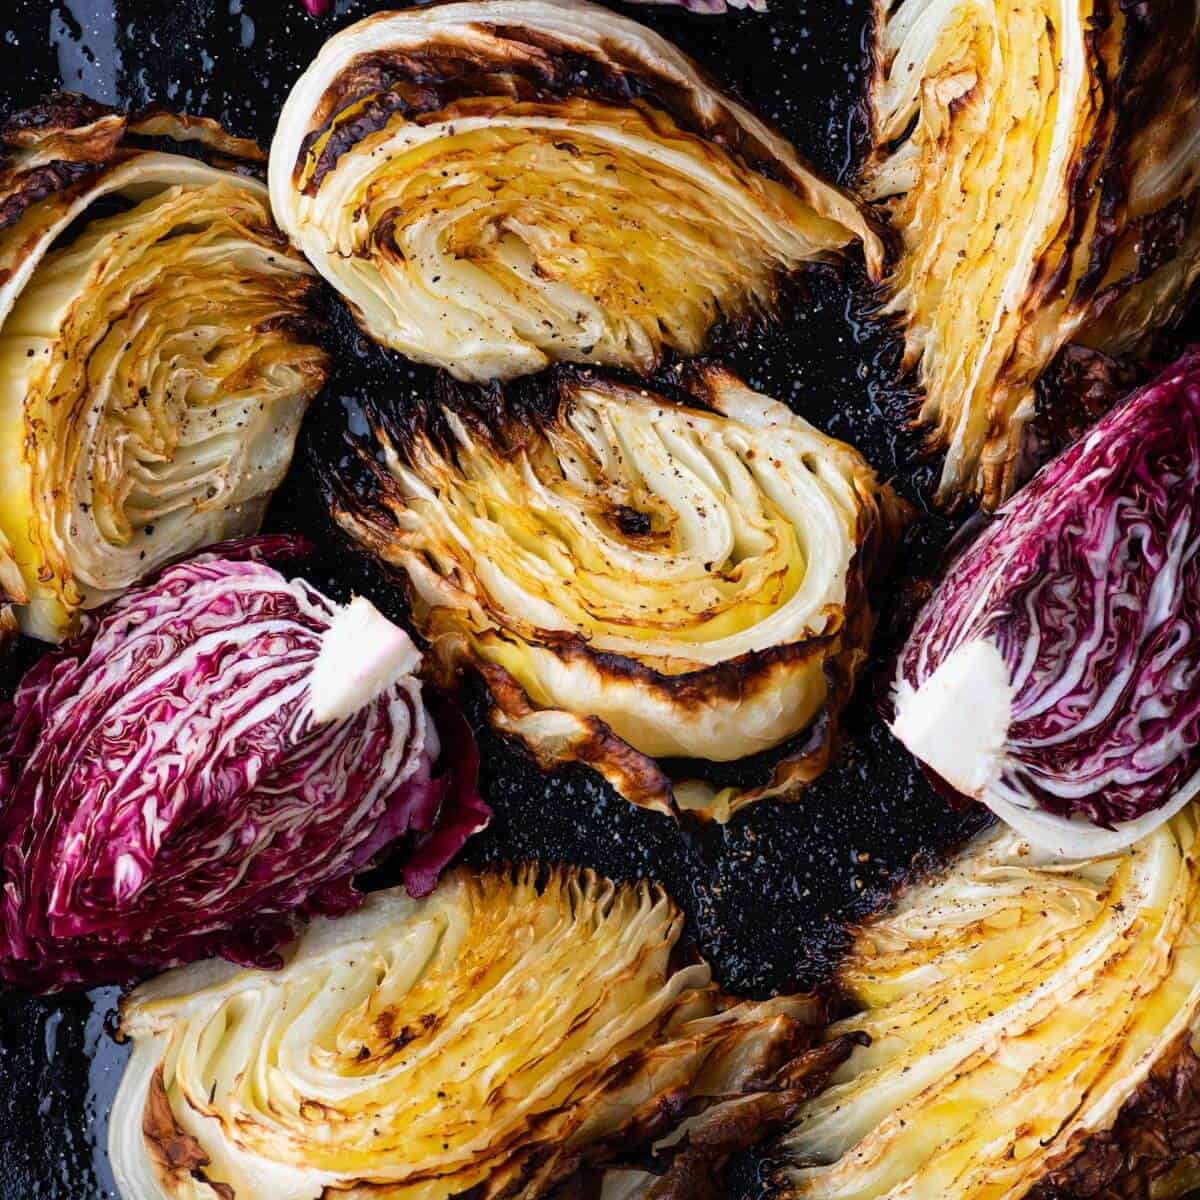 A roasting pan filled with roasted cabbage wedges and purple radicchio.